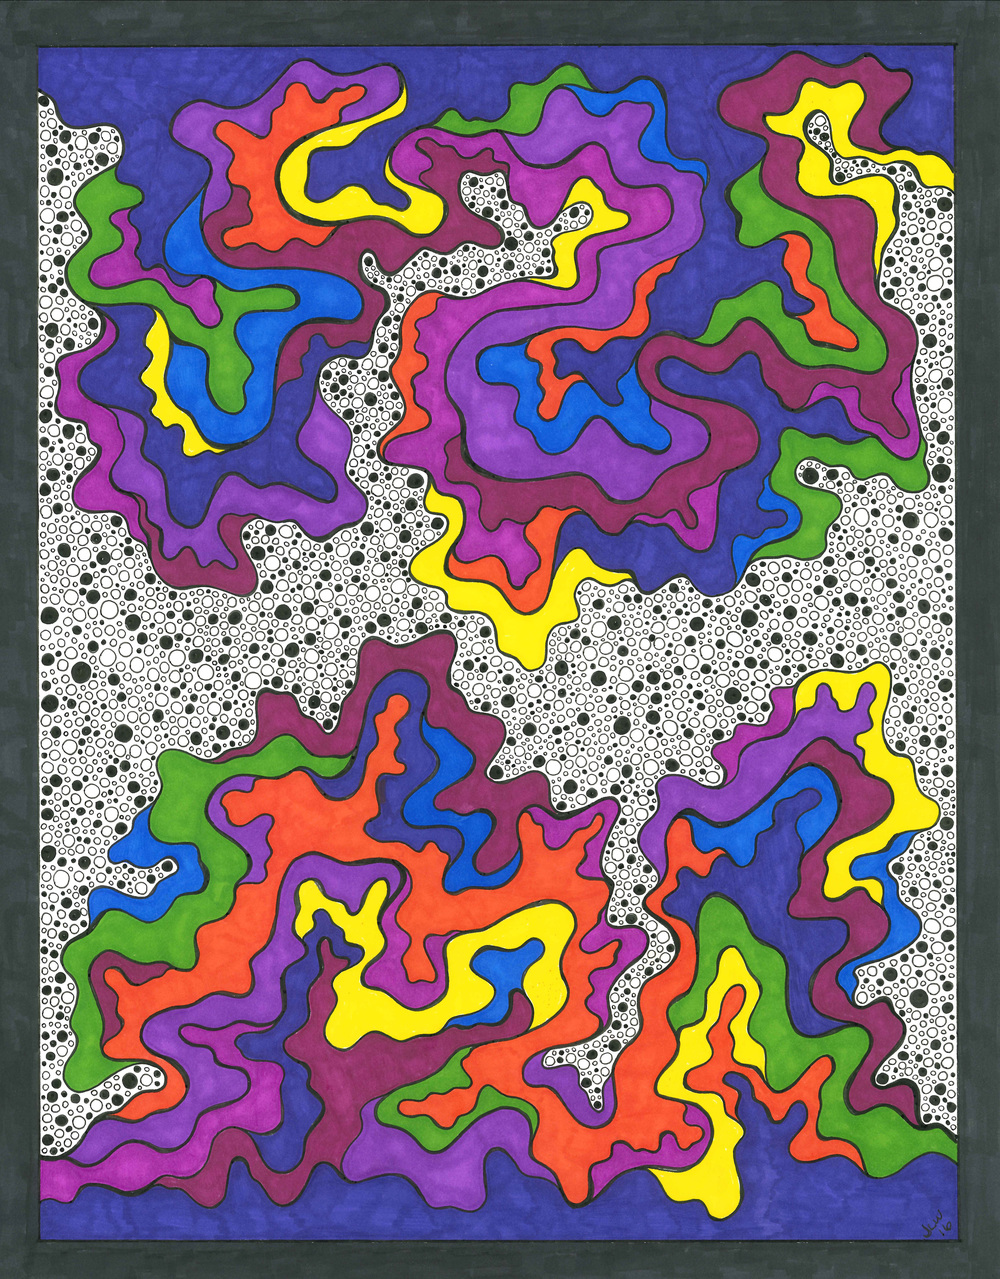 Untitled, 2016, Pen & Ink, Marker